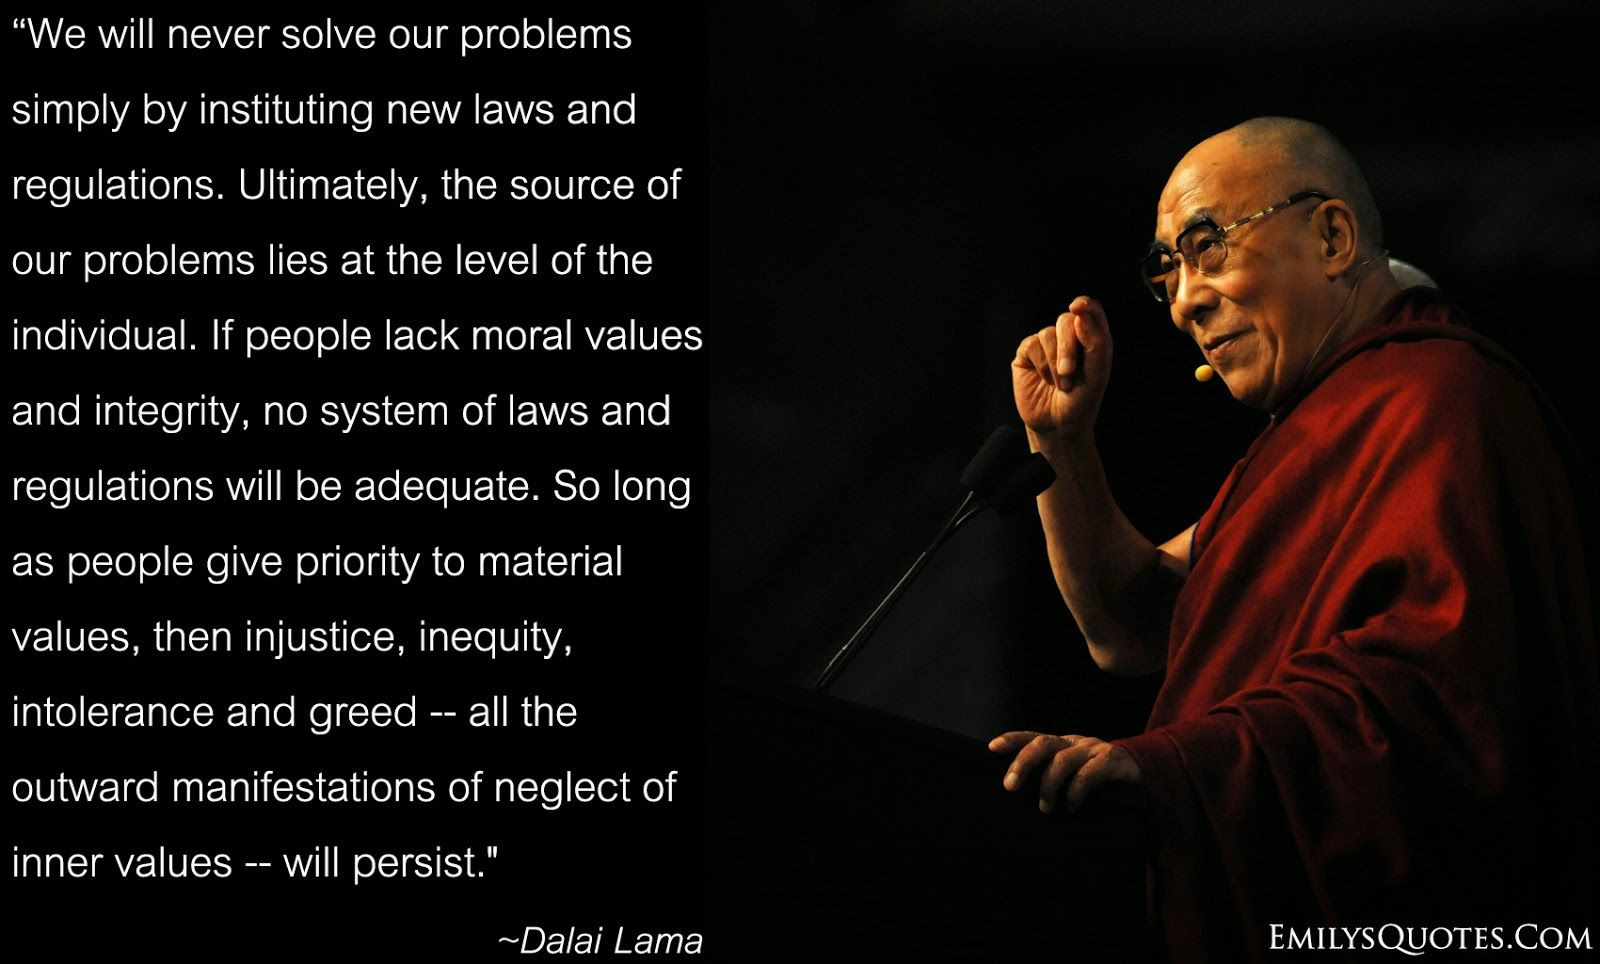 Dalai Lama Quotes On Life Dalai Lama Quotes About Life  Bebegi  Bebegi 582849 On Wookmark